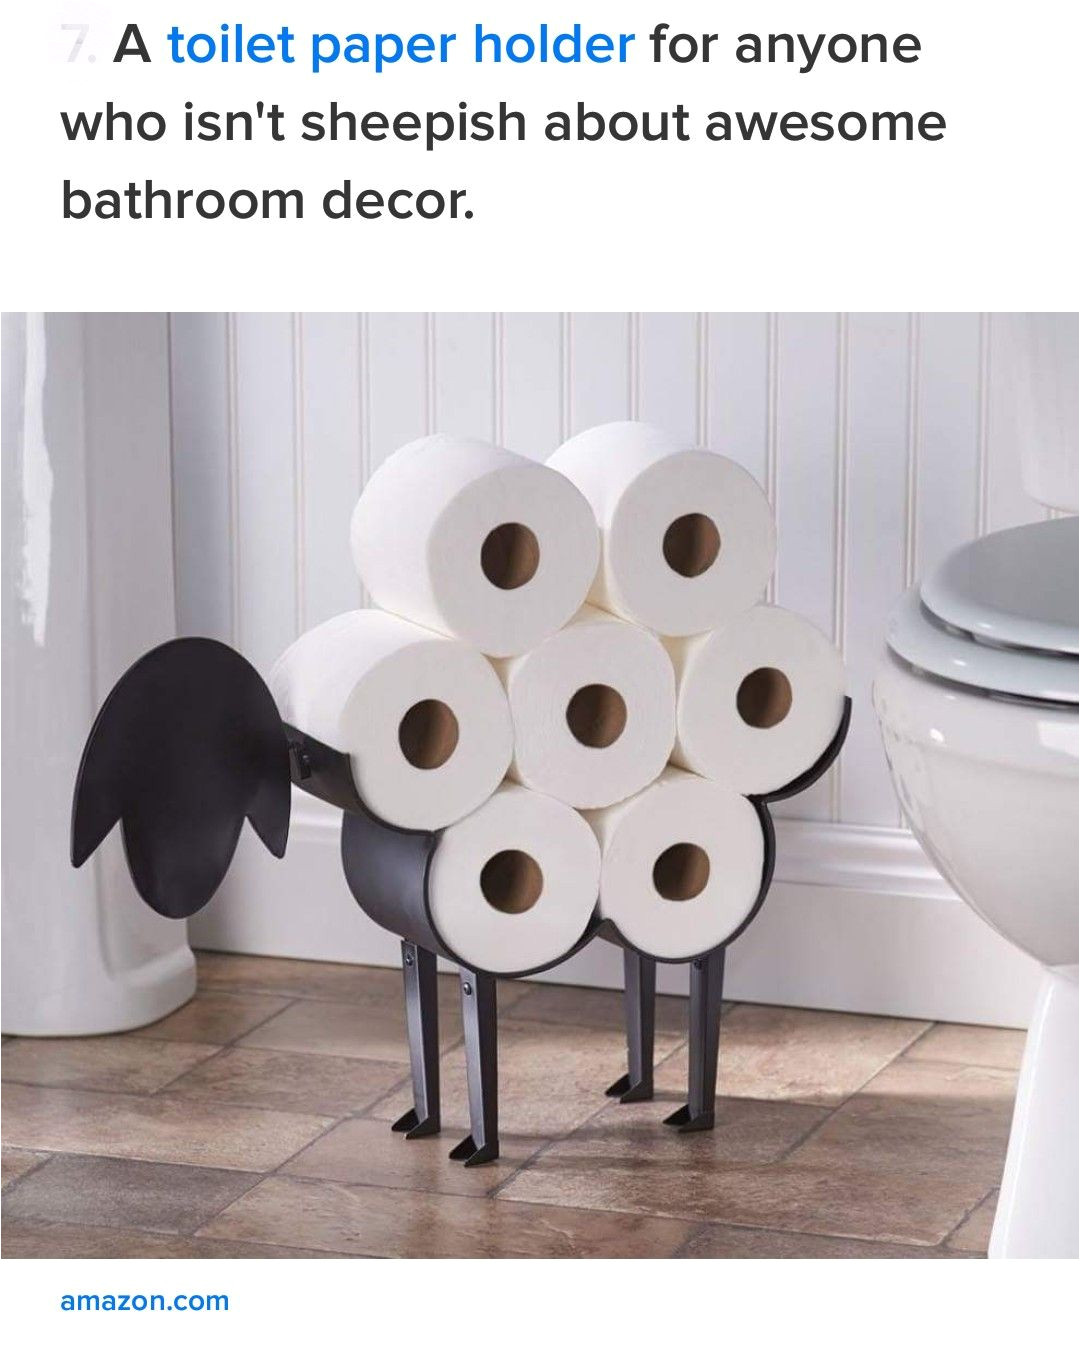 awesome sheep toilet paper holder